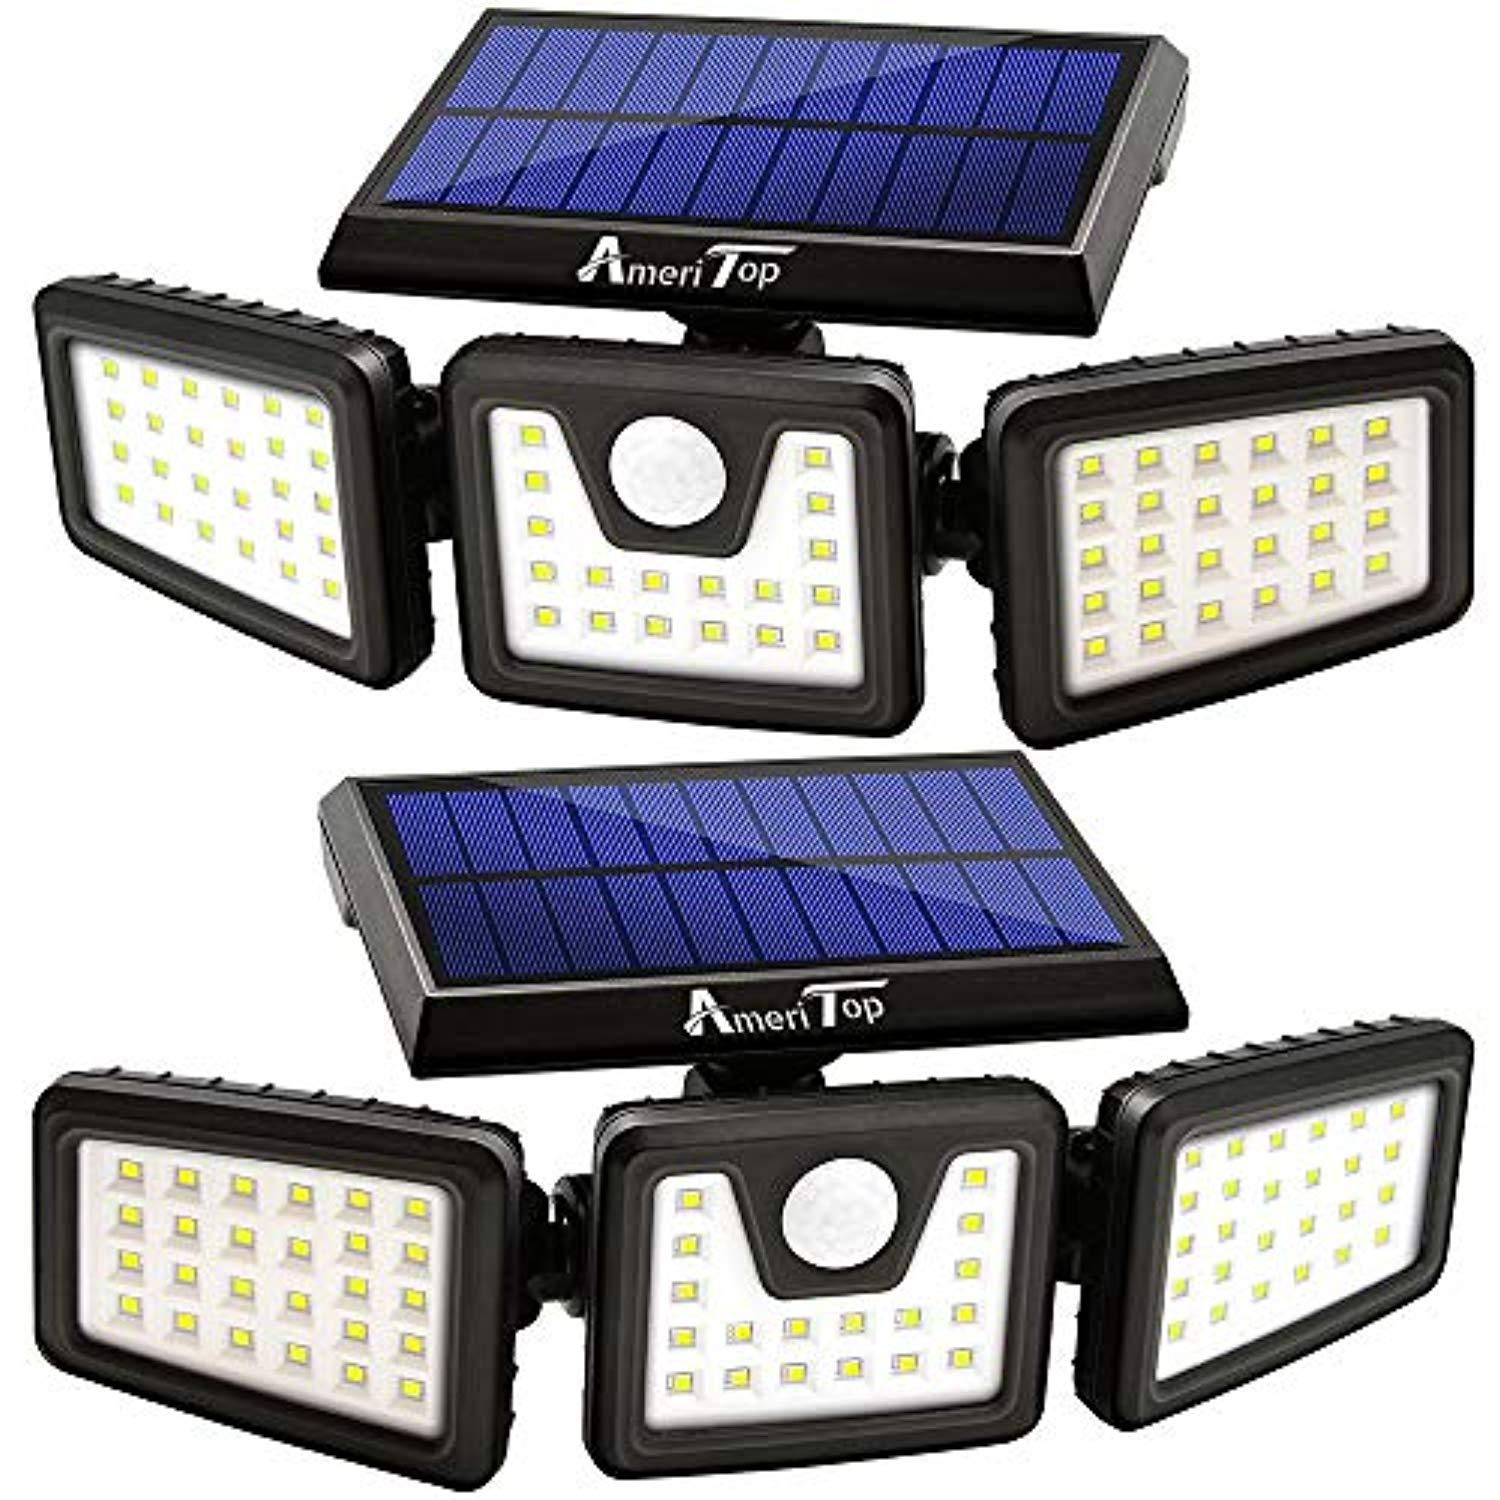 Solar Lights Outdoor 800lm Wireless Led Solar Motion Sensor 3 Adjustable Heads 270 In 2020 Motion Sensor Lights Outdoor Sensor Lights Outdoor Solar Security Light